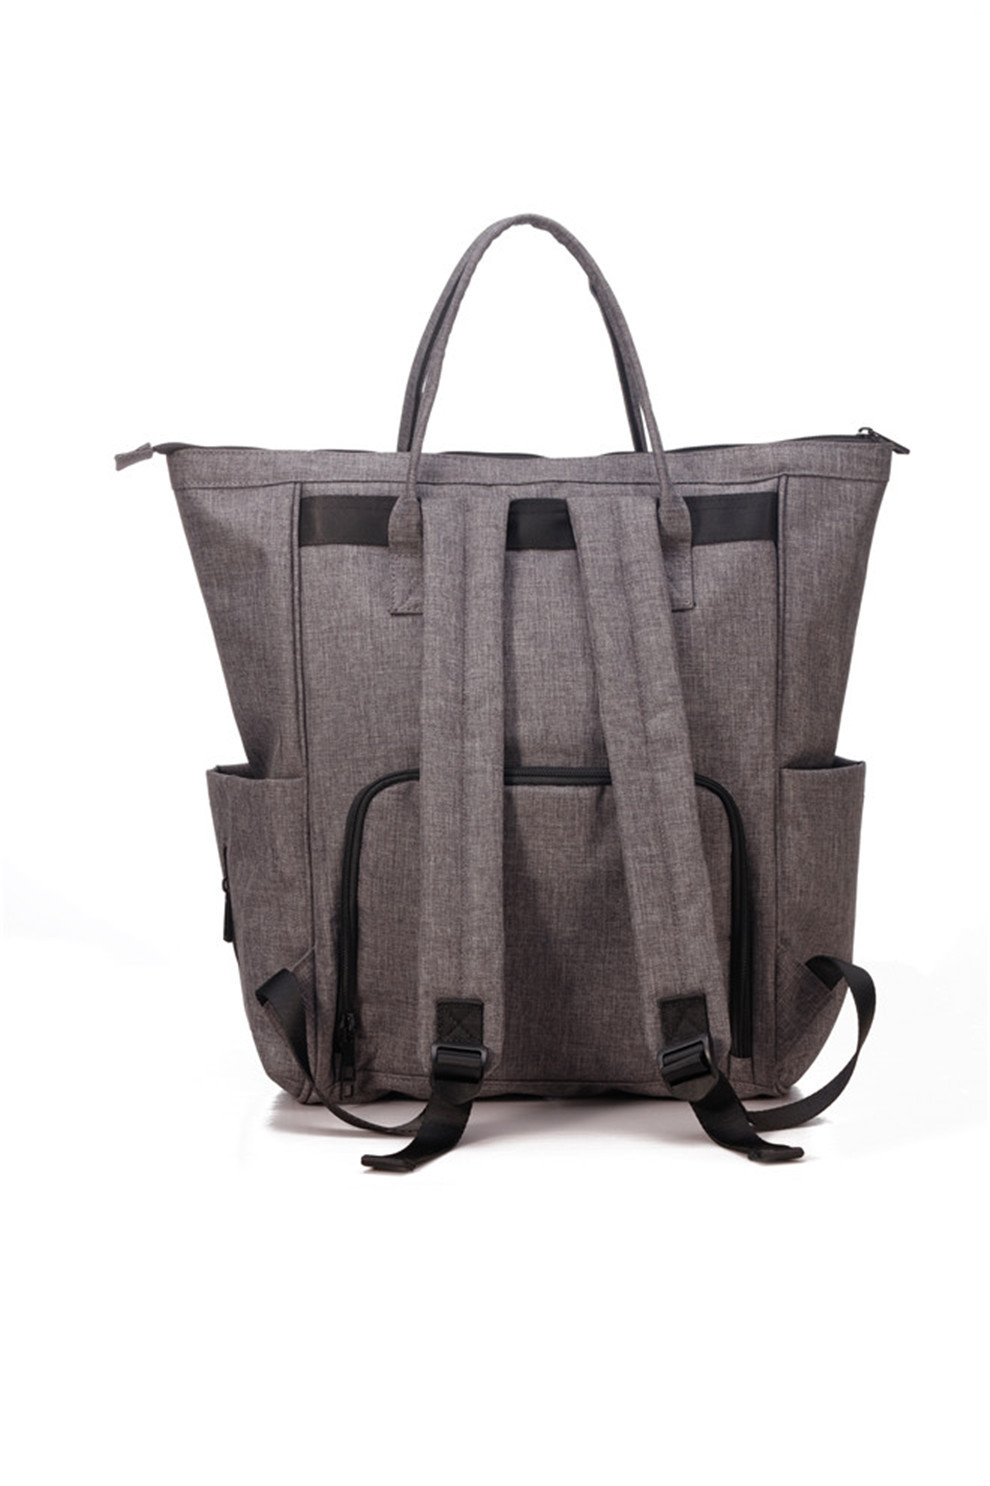 Best Affordable Diaper Bags